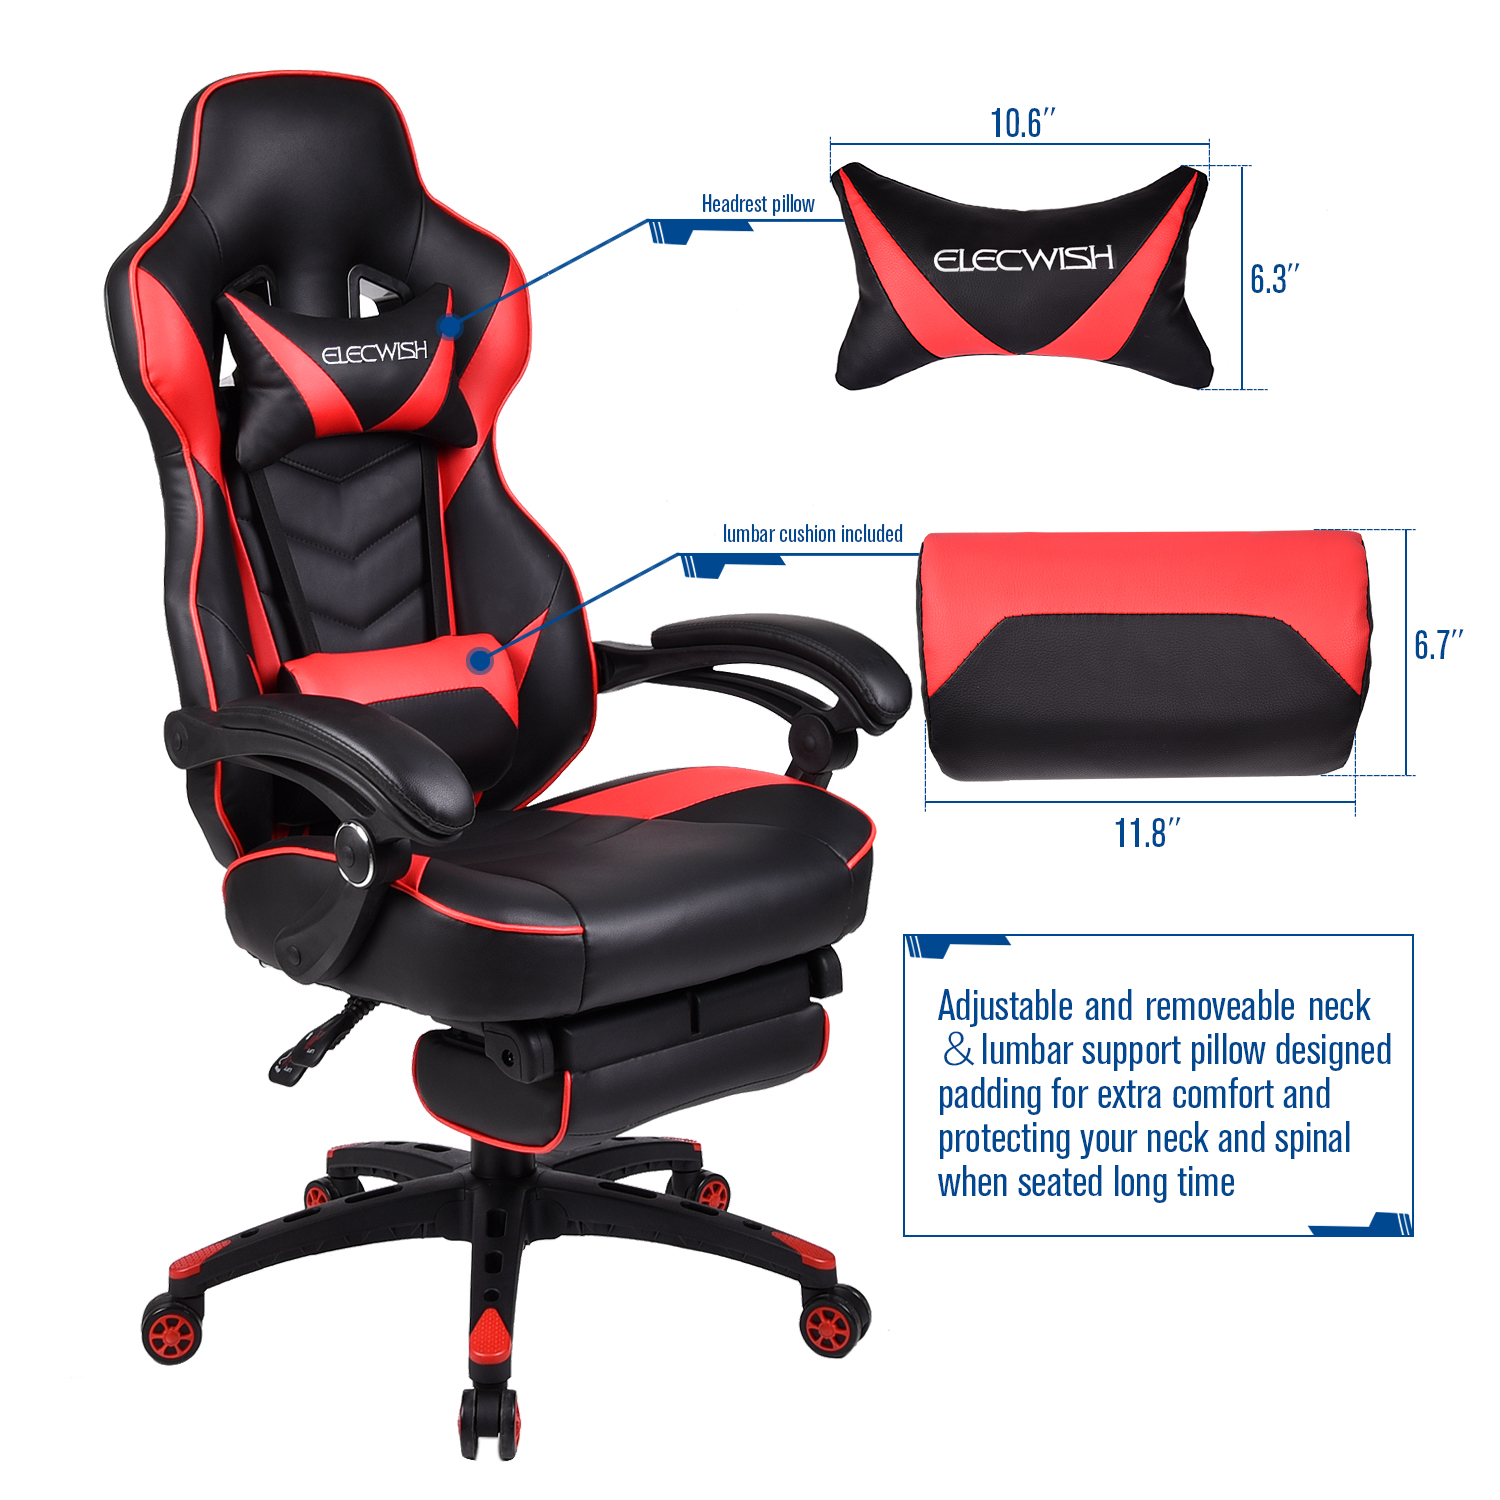 Stupendous Details About Video Gaming Chair Racing High Back Leather Recliner Office Desk Seat Footrest Bralicious Painted Fabric Chair Ideas Braliciousco